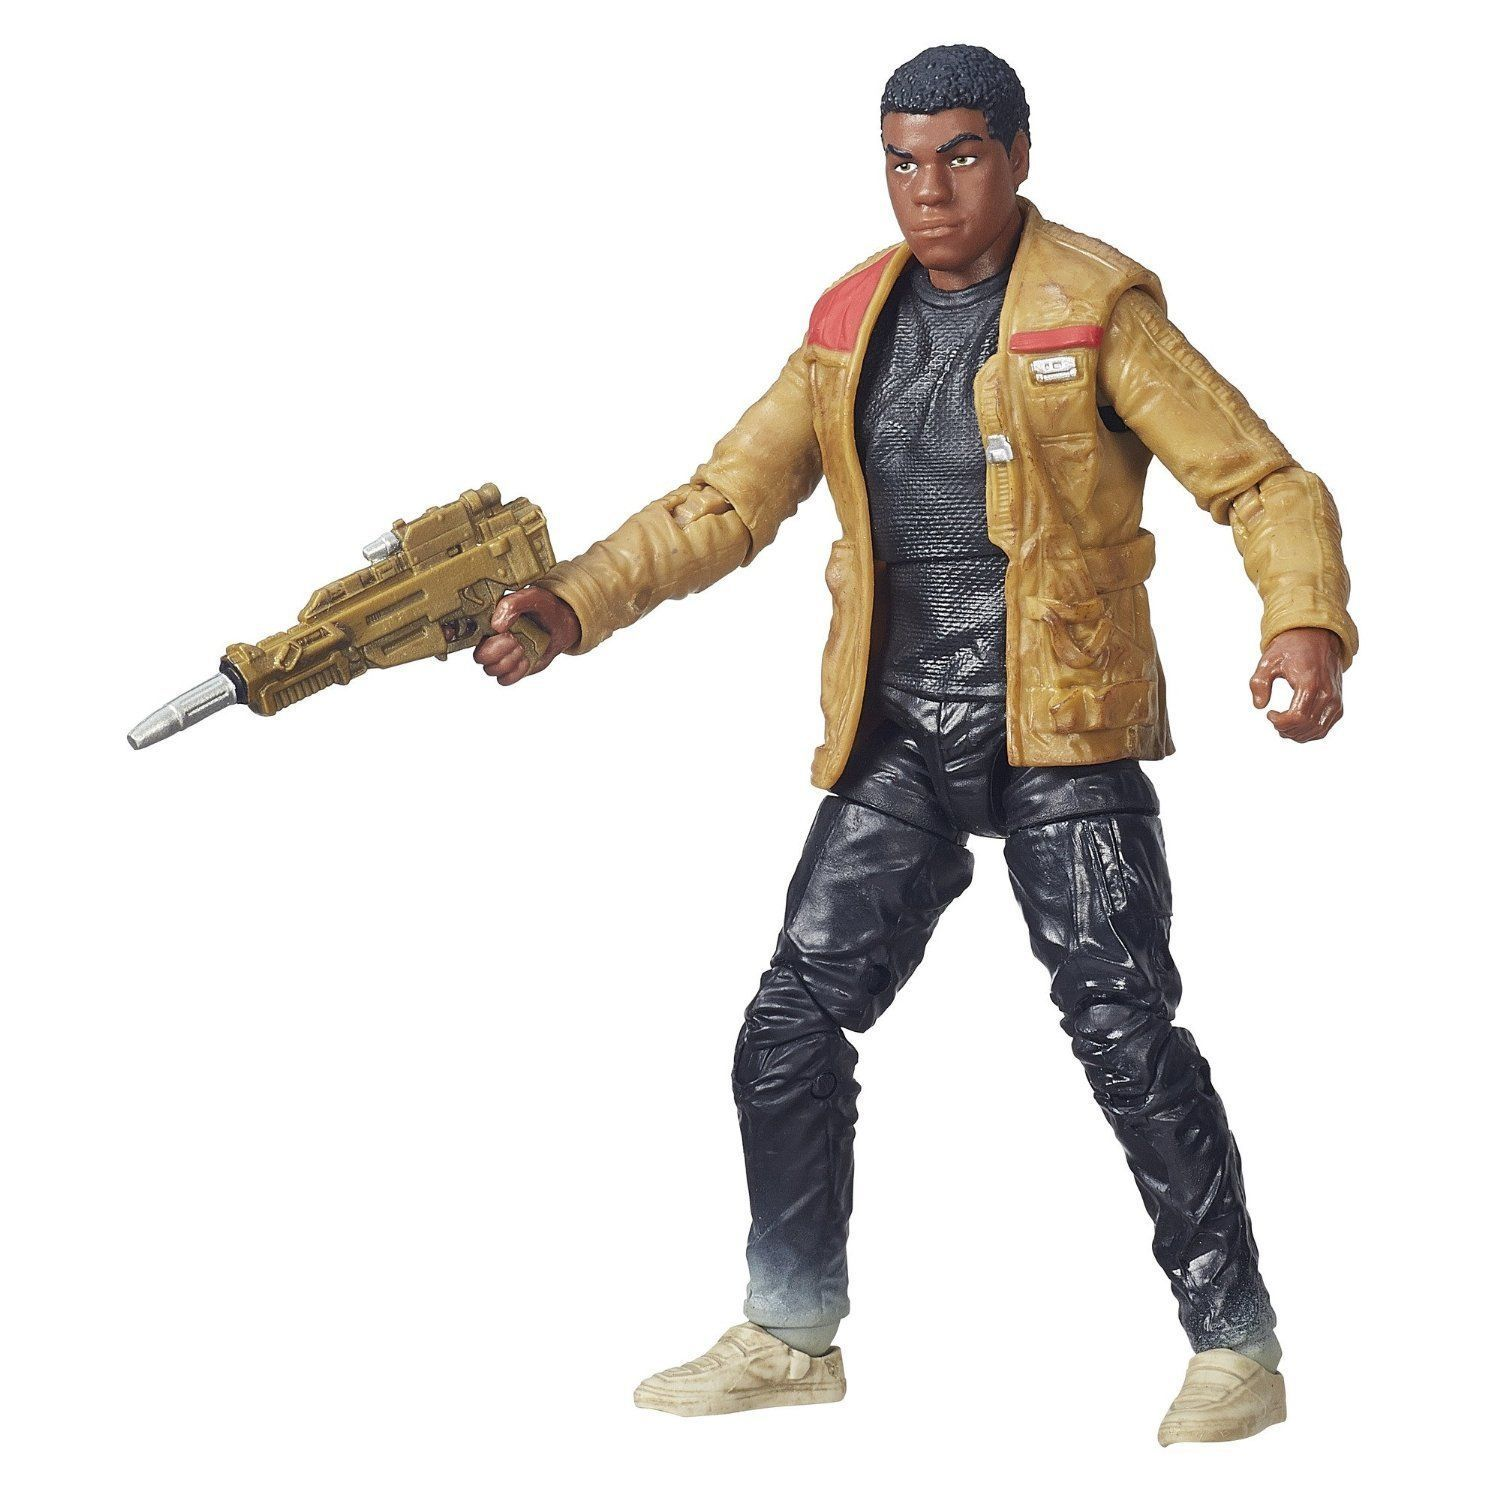 Image 0 of Star Wars The Black Series 6-Inch Action Figure First Order Finn (Jakku)